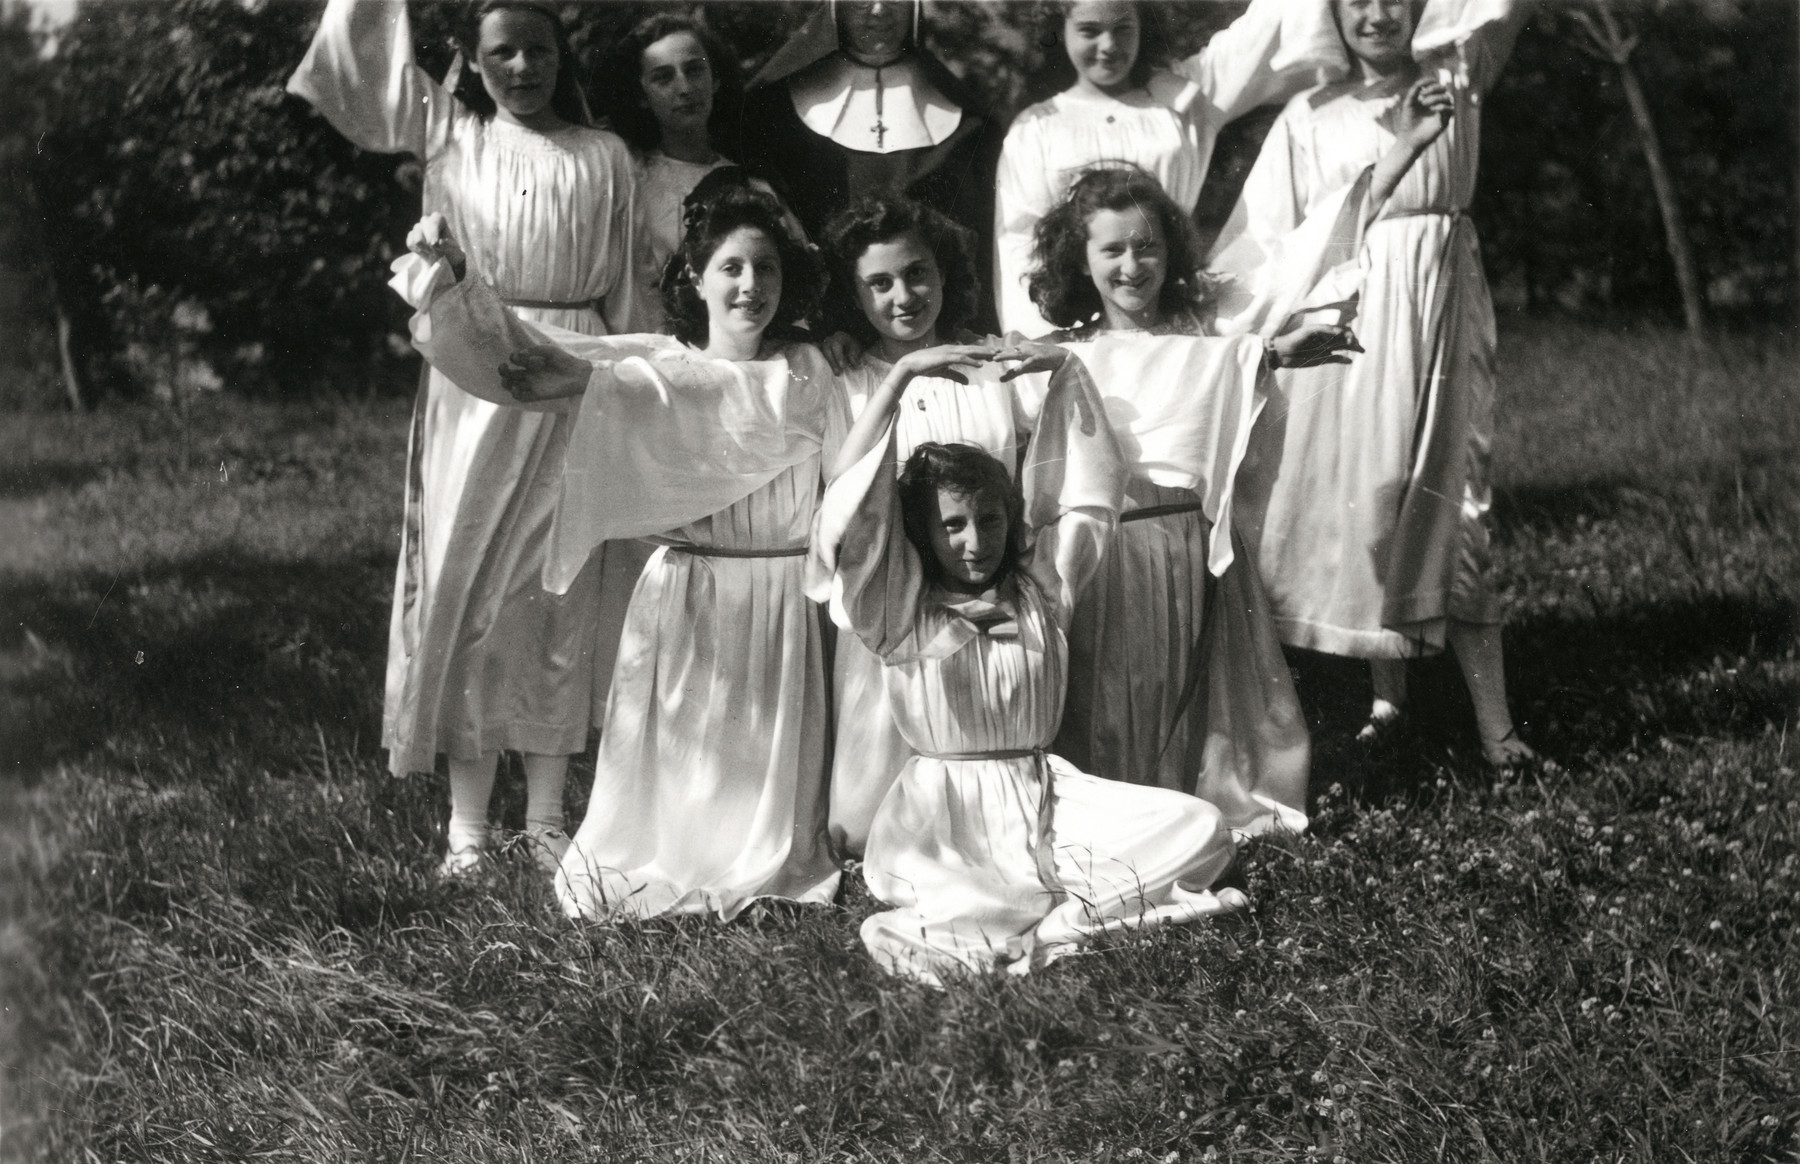 Group portrait of school girls, including Jewish girls in hiding, in the St. Antoine de Padue convent.  Liliane Ferdman is pictured in front with her hands above her head.